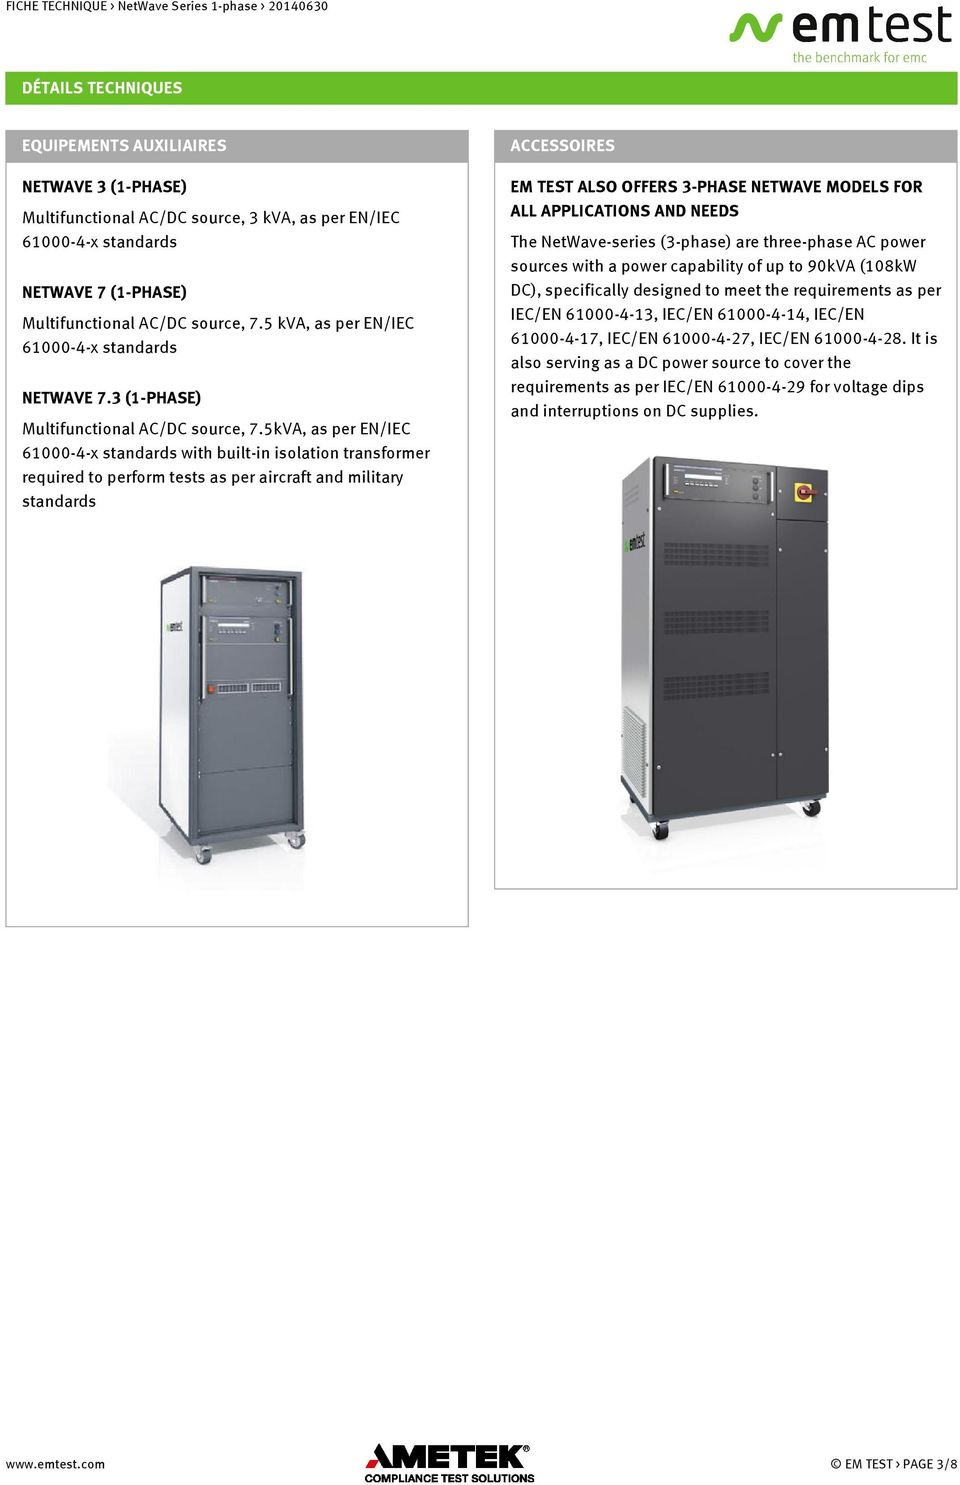 5kVA, as per EN/IEC 61000-4-x standards with built-in isolation transformer required to perform tests as per aircraft and military standards The NetWave-series (3-phase) are three-phase AC power